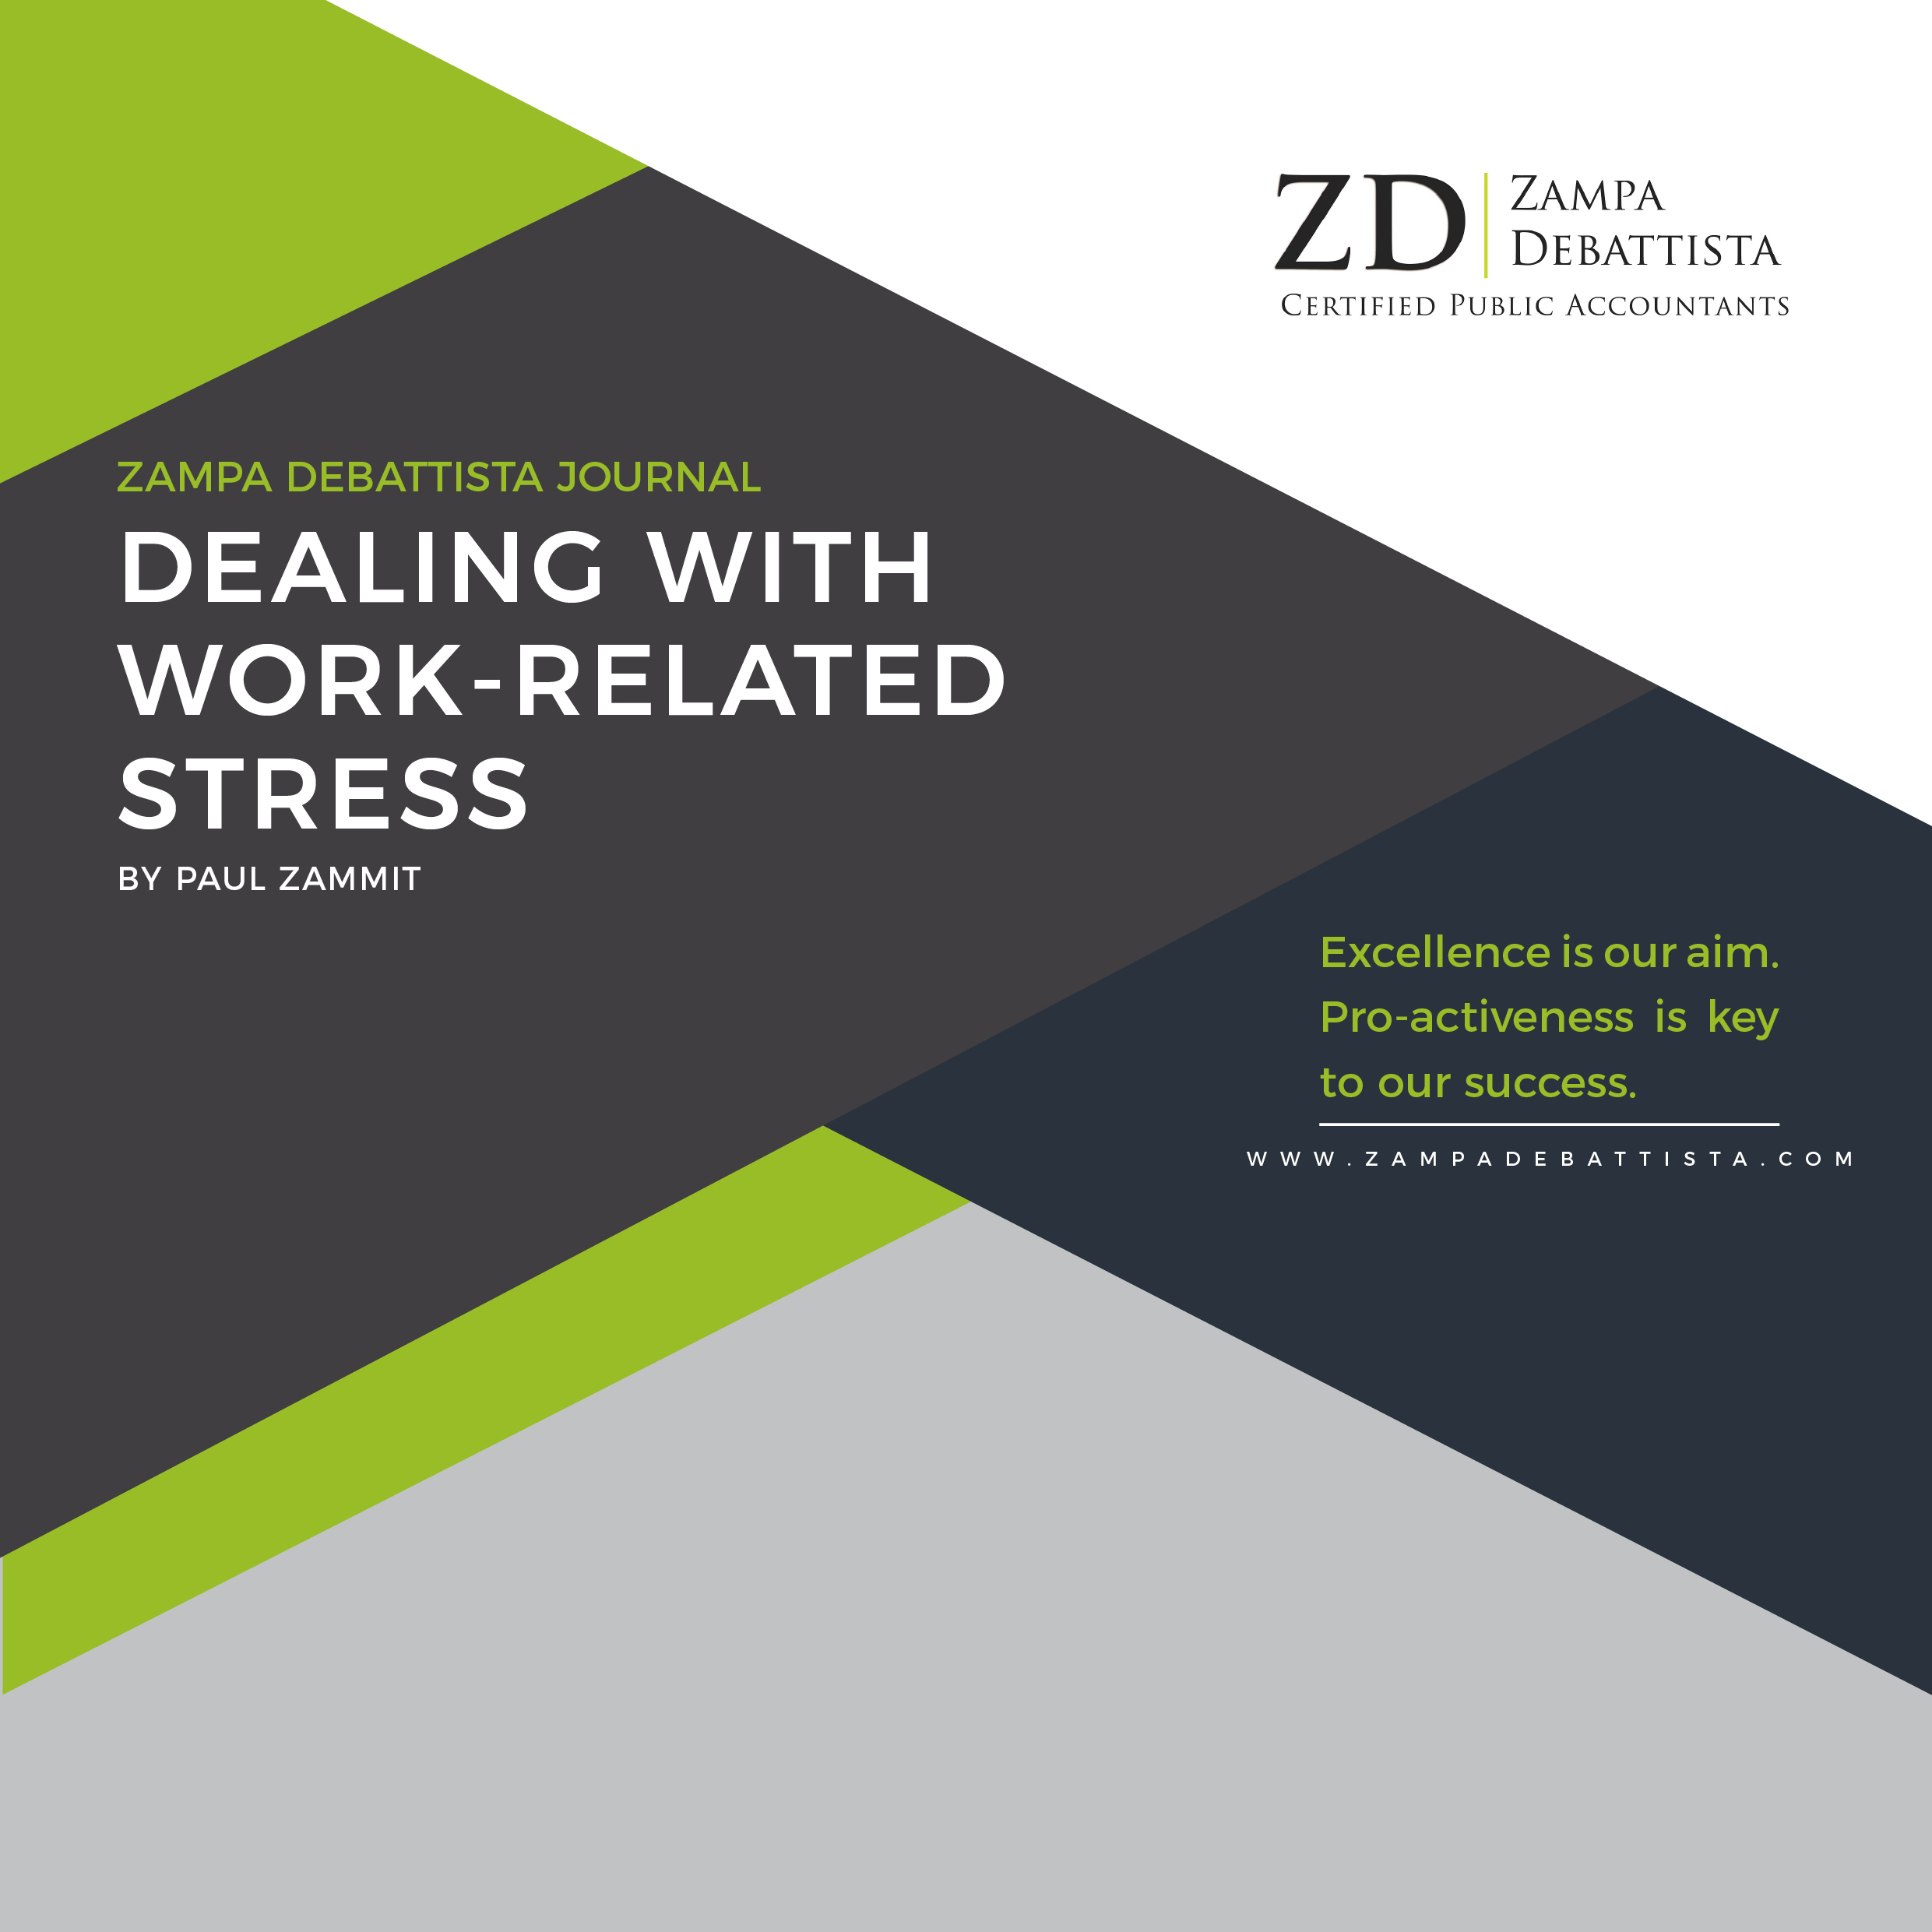 Dealing With Work-Related Stress by Paul Zammit